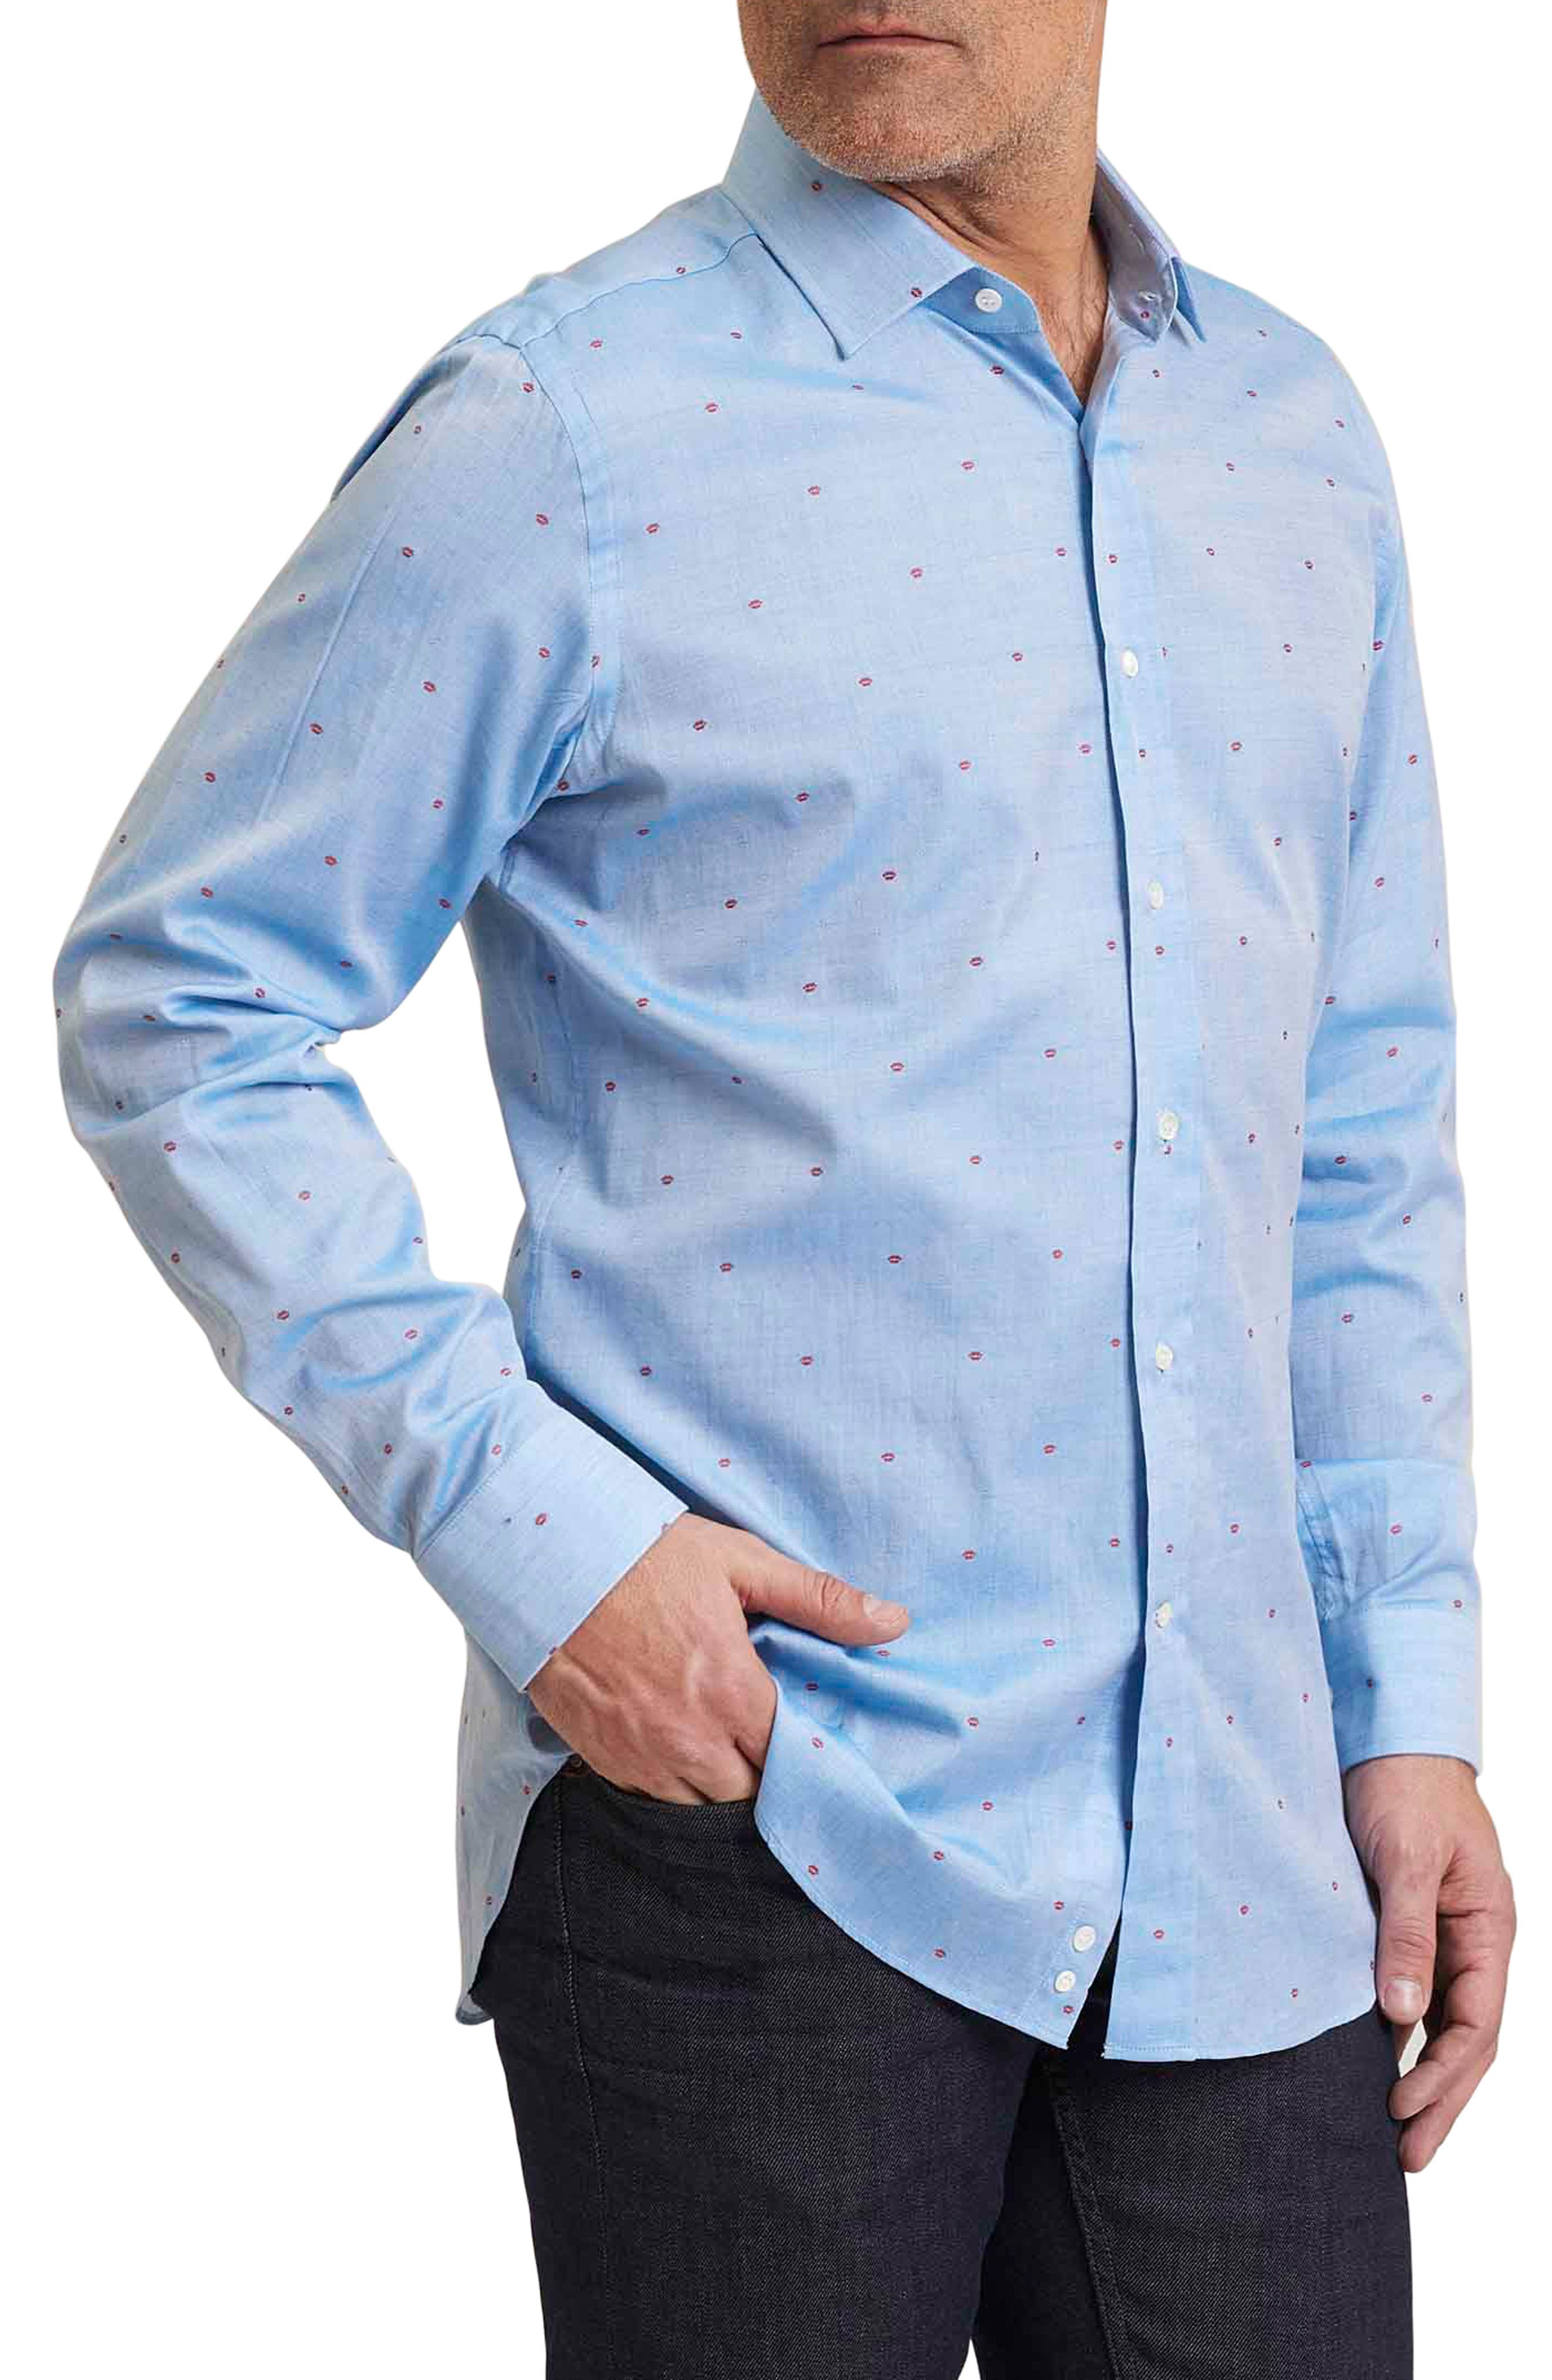 Sweet Lips Regular Fit Embroidered Sport Shirt,                             Main thumbnail 1, color,                             Blue